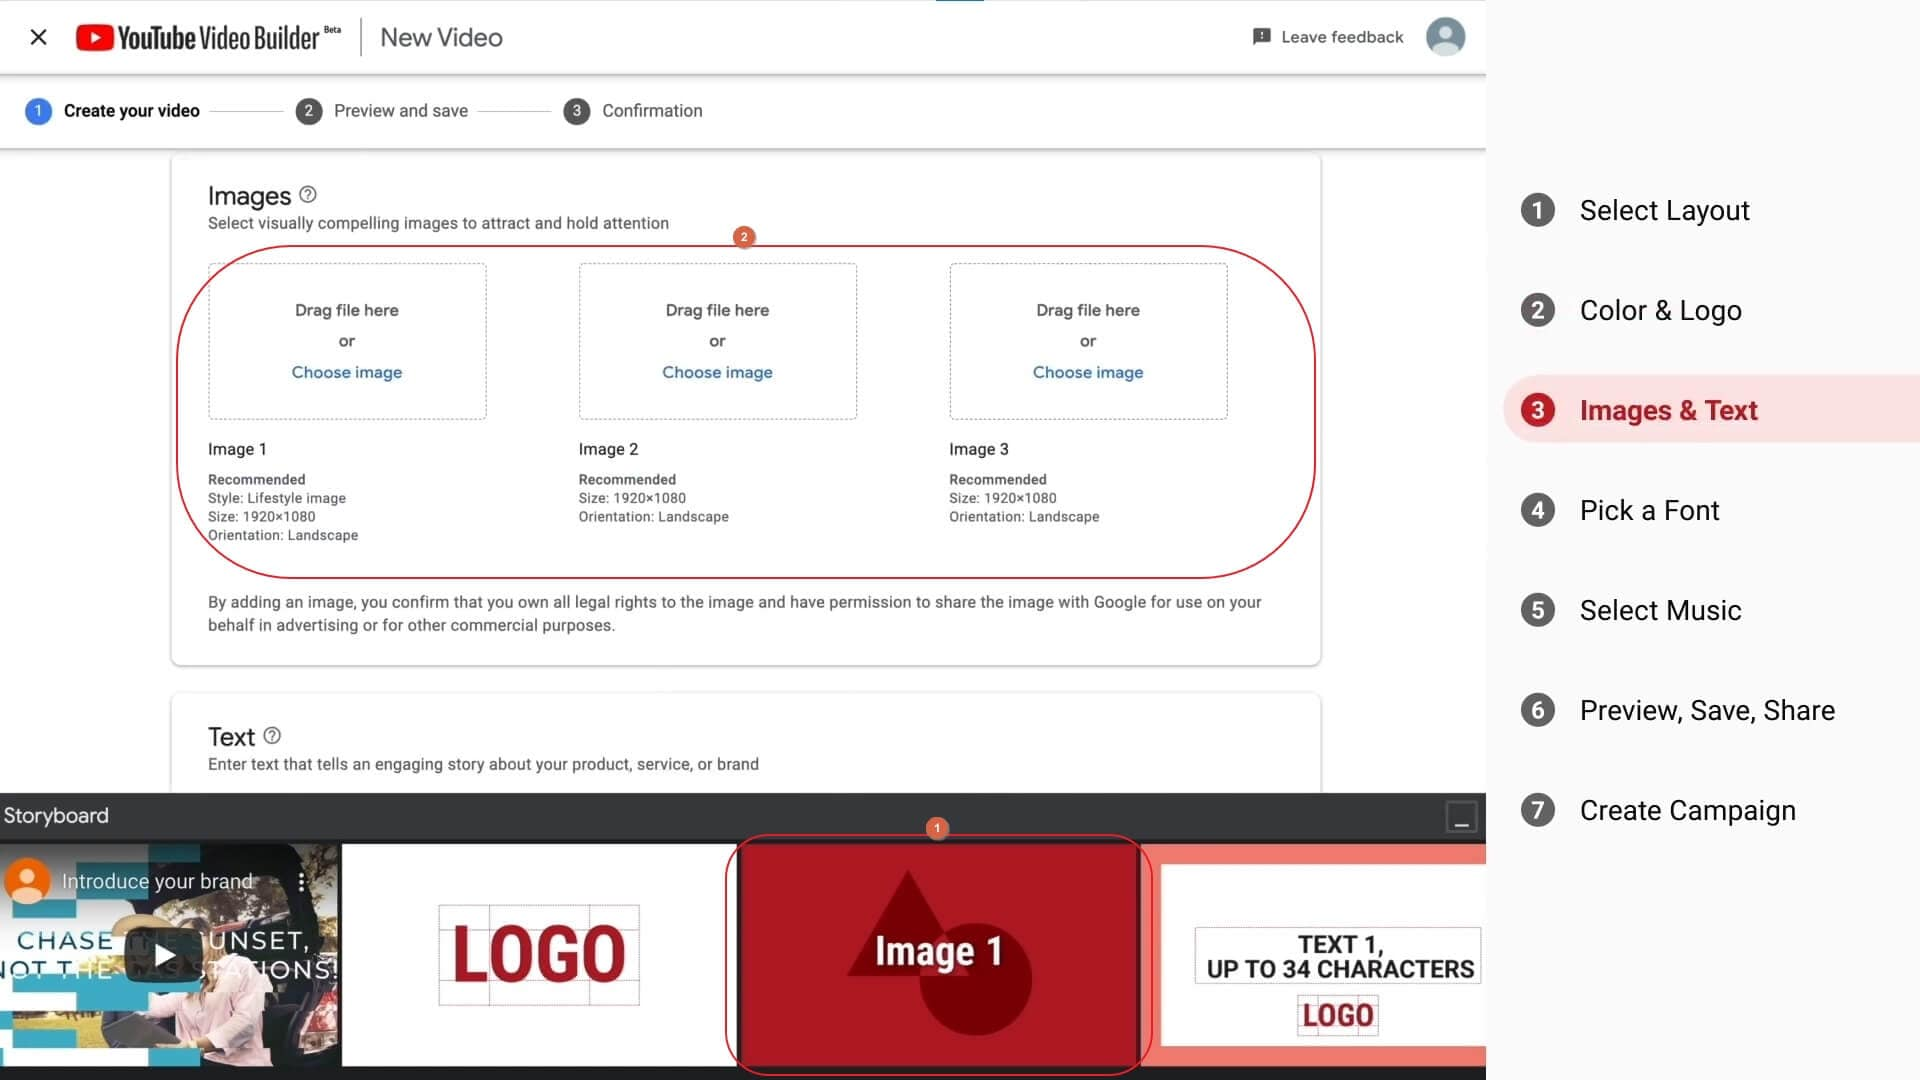 Create video with YouTube Video Builder